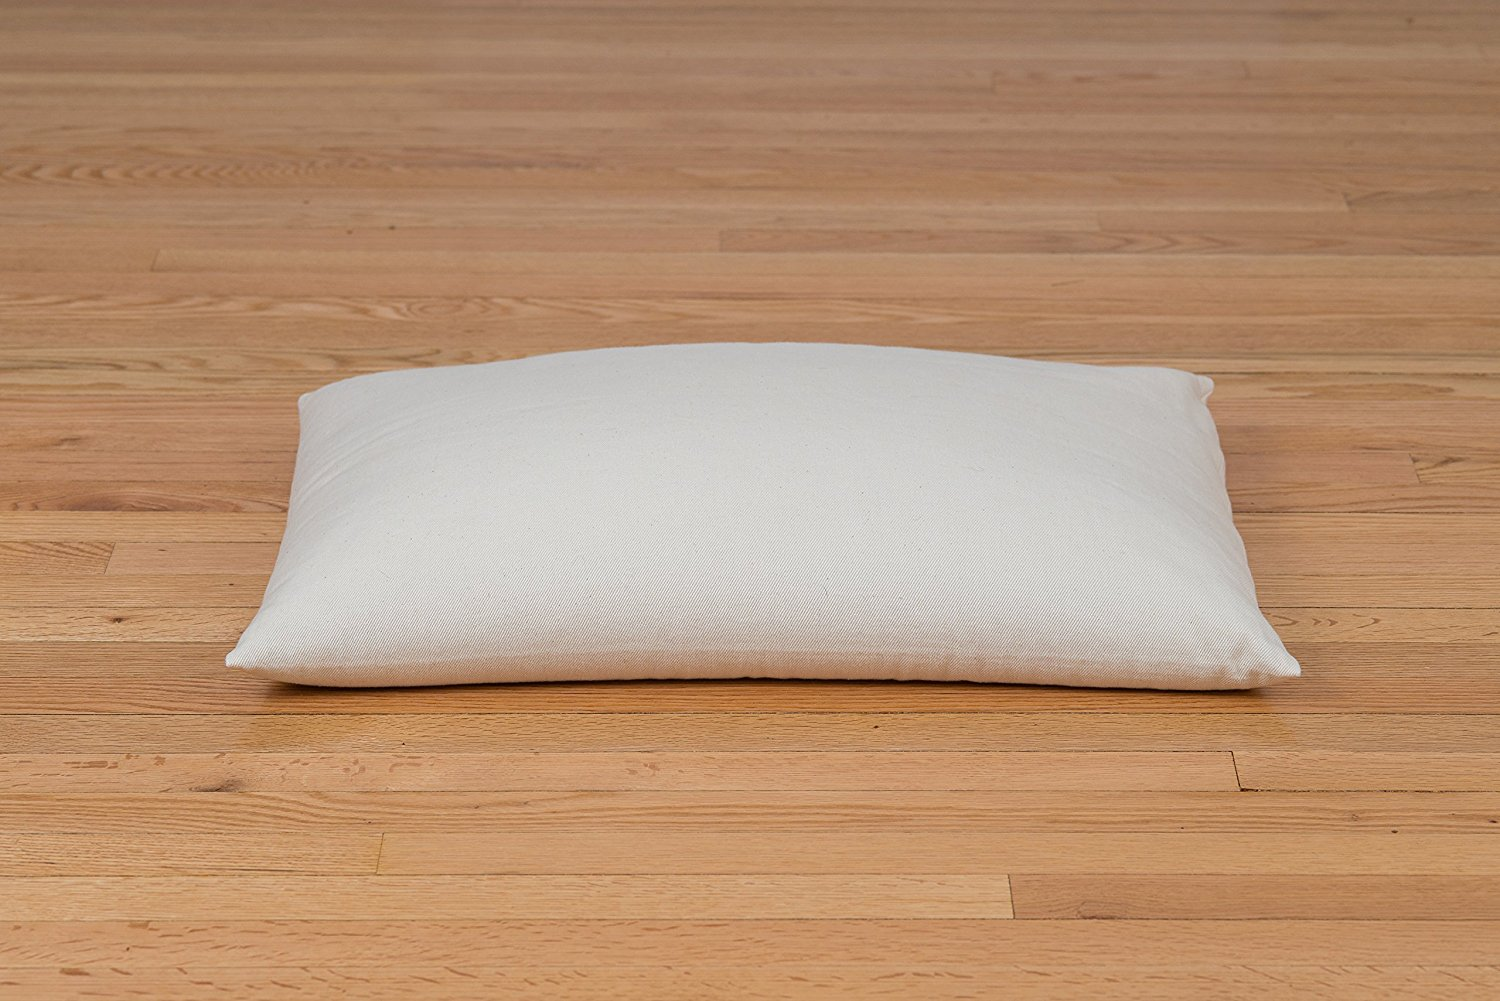 Best buckwheat pillow for side sleepers